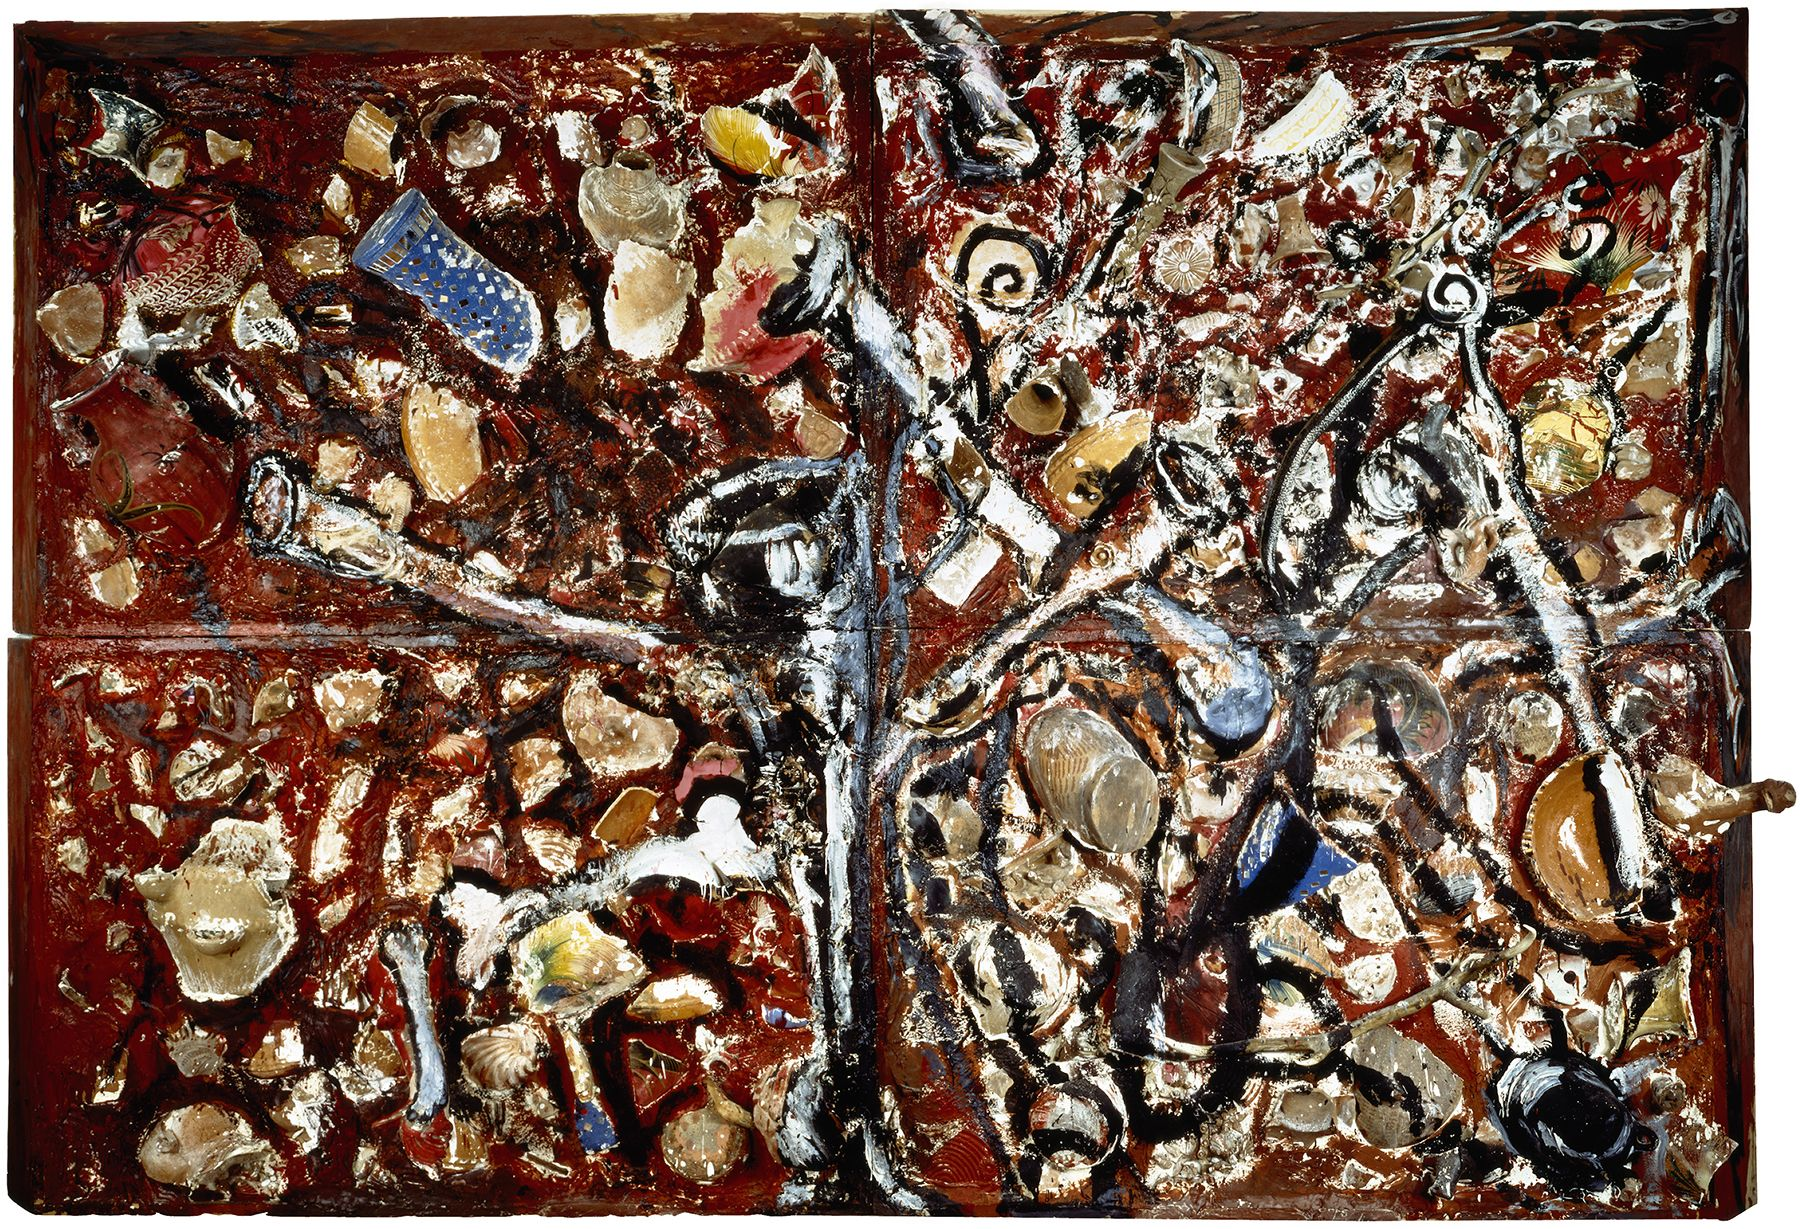 Julian Schnabel, Bones and Trumpets Rubbing Against Each Other Towards Infinity